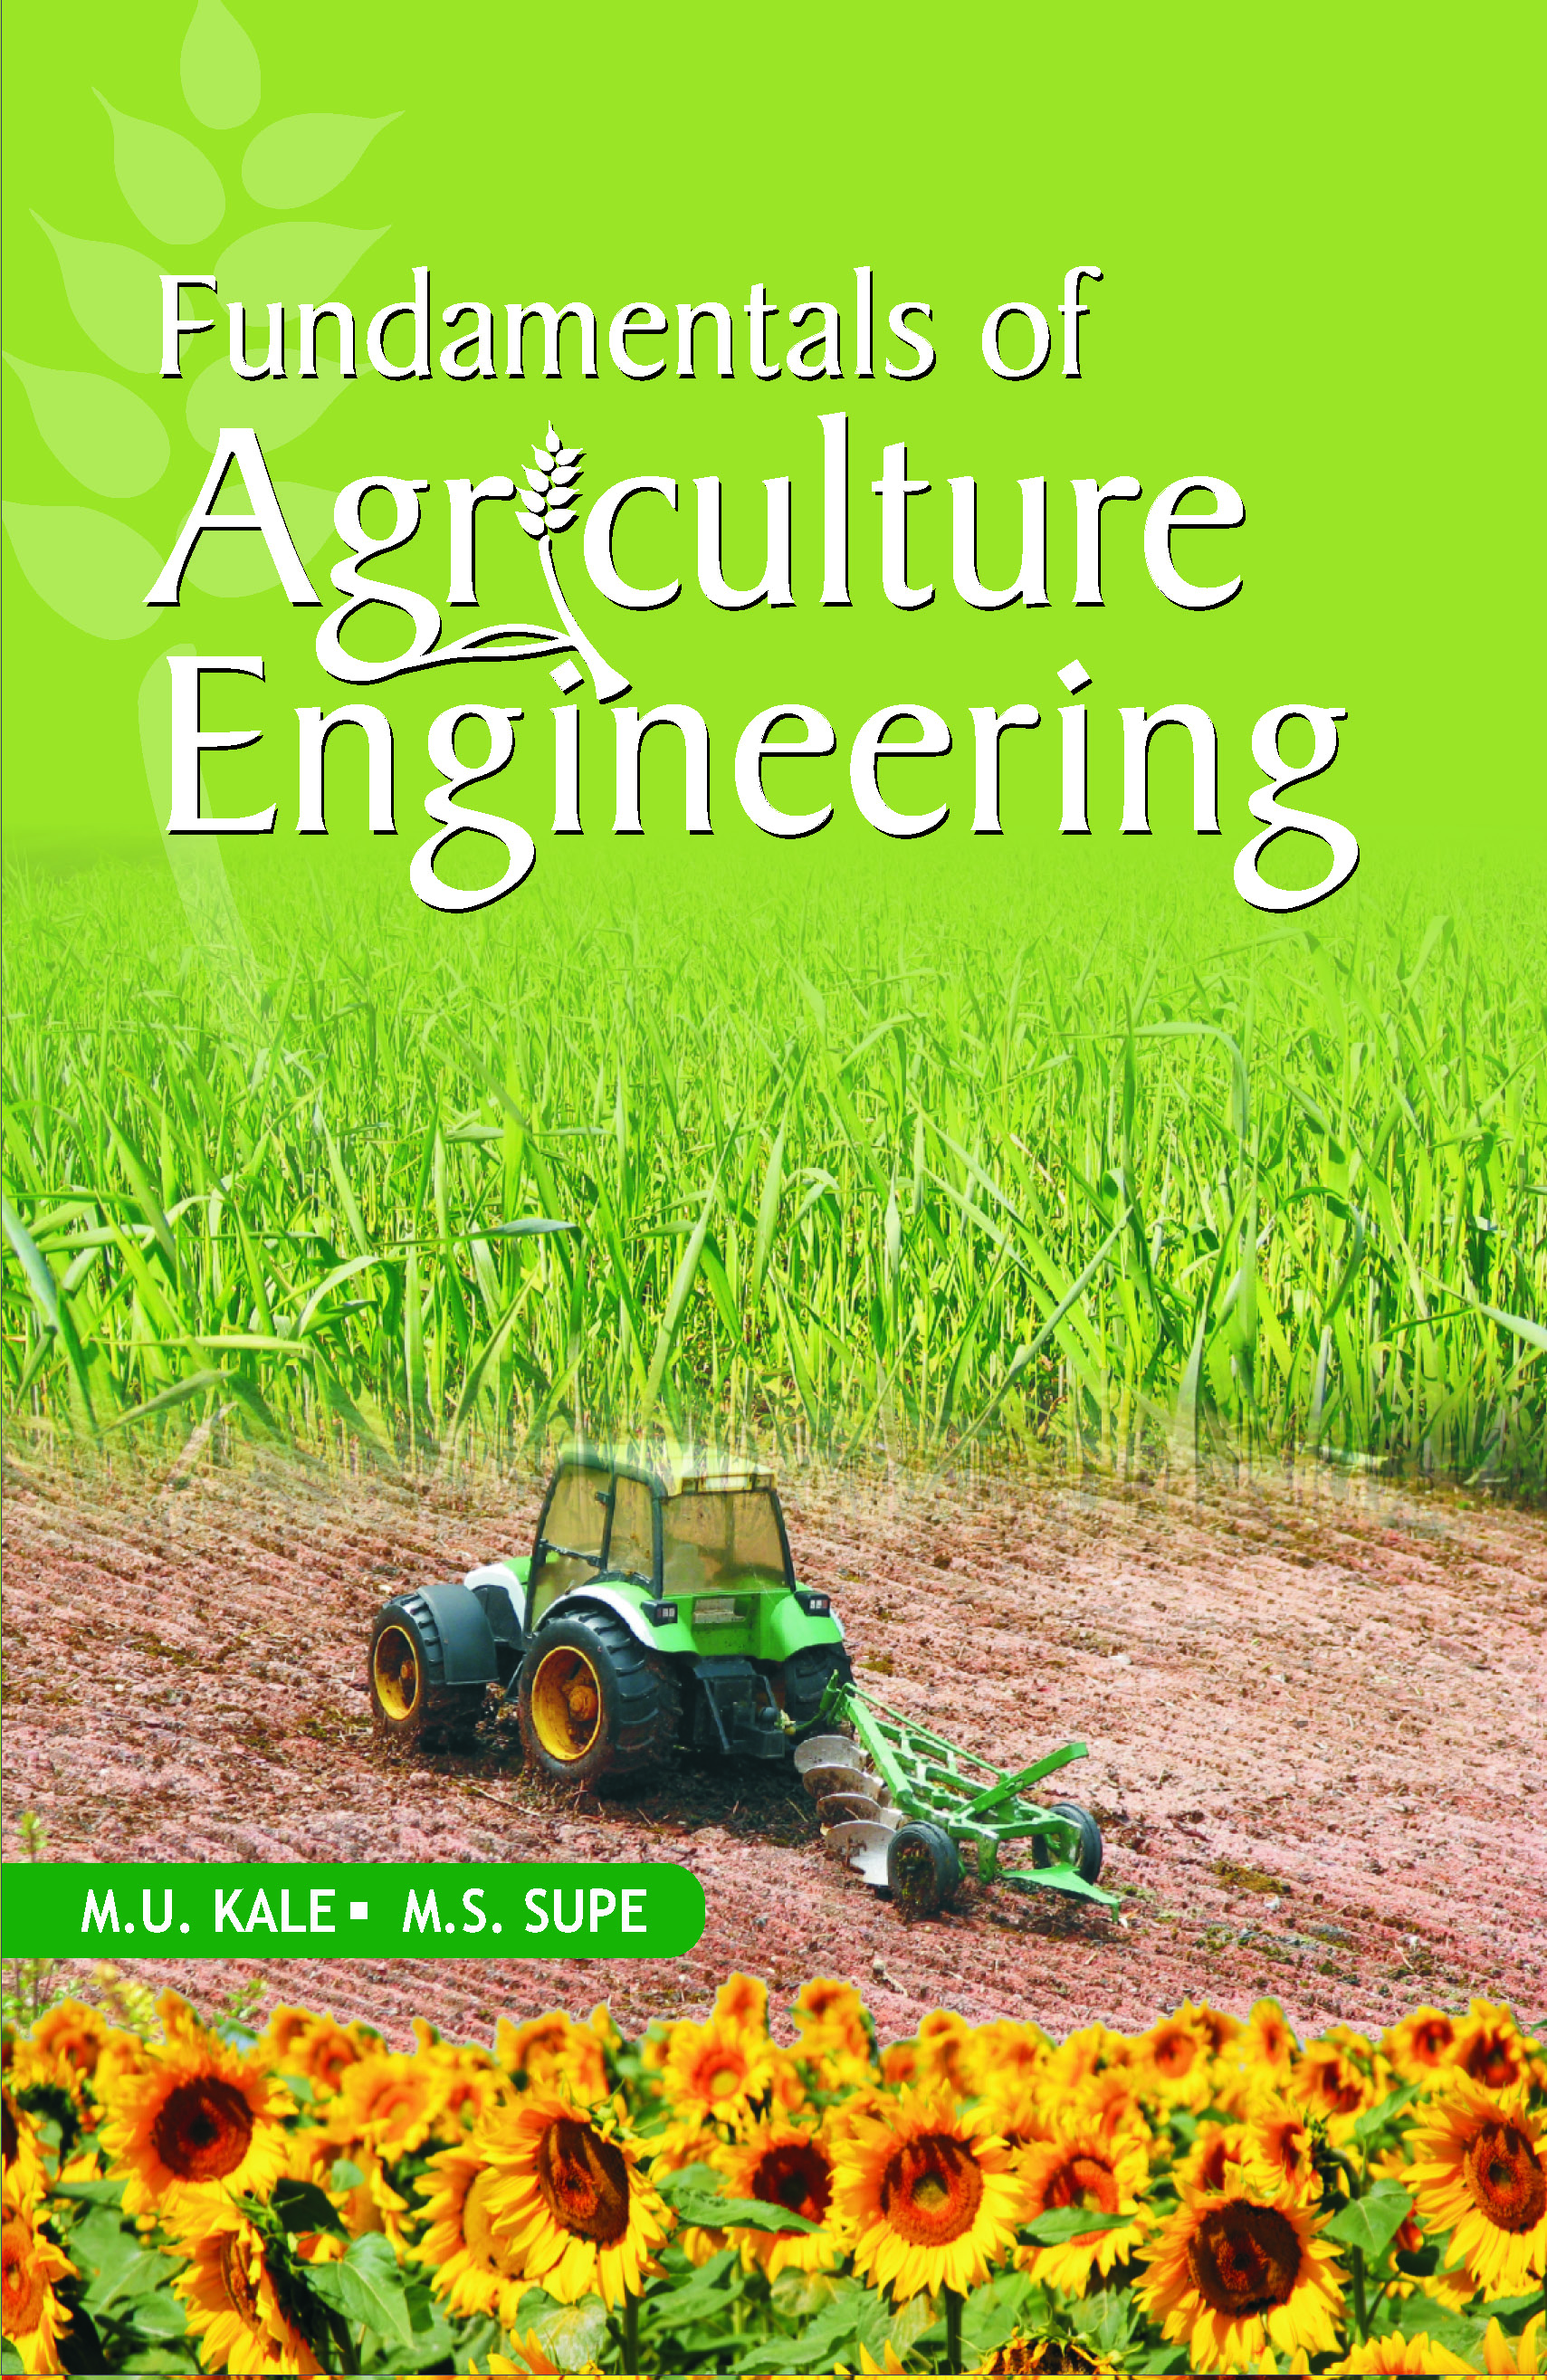 Fundamentals of Agriculture Engineering (PB)